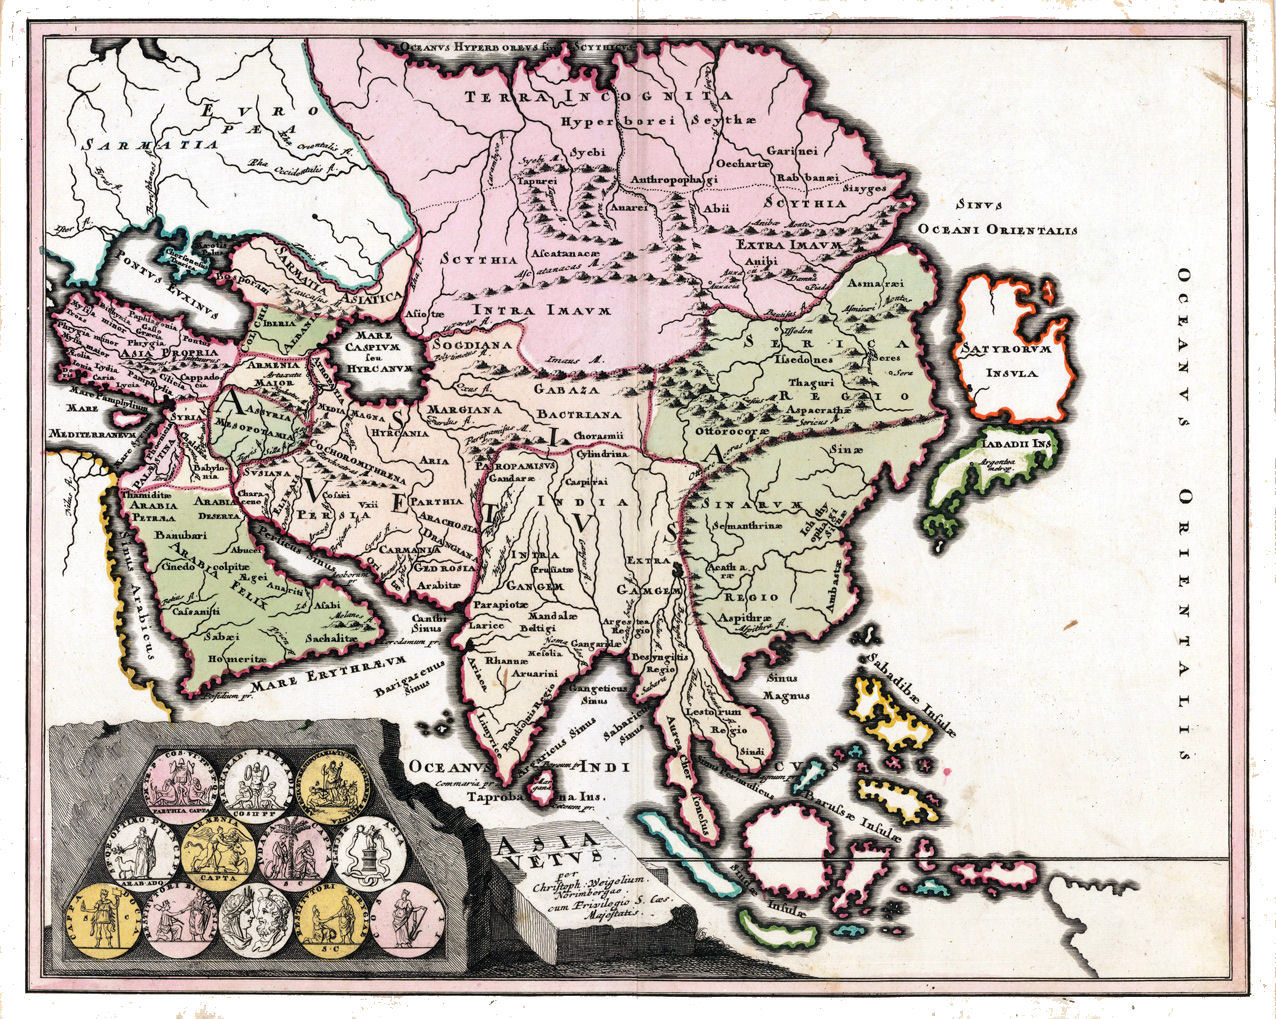 Asia maps history asia history map 1719 gumiabroncs Choice Image